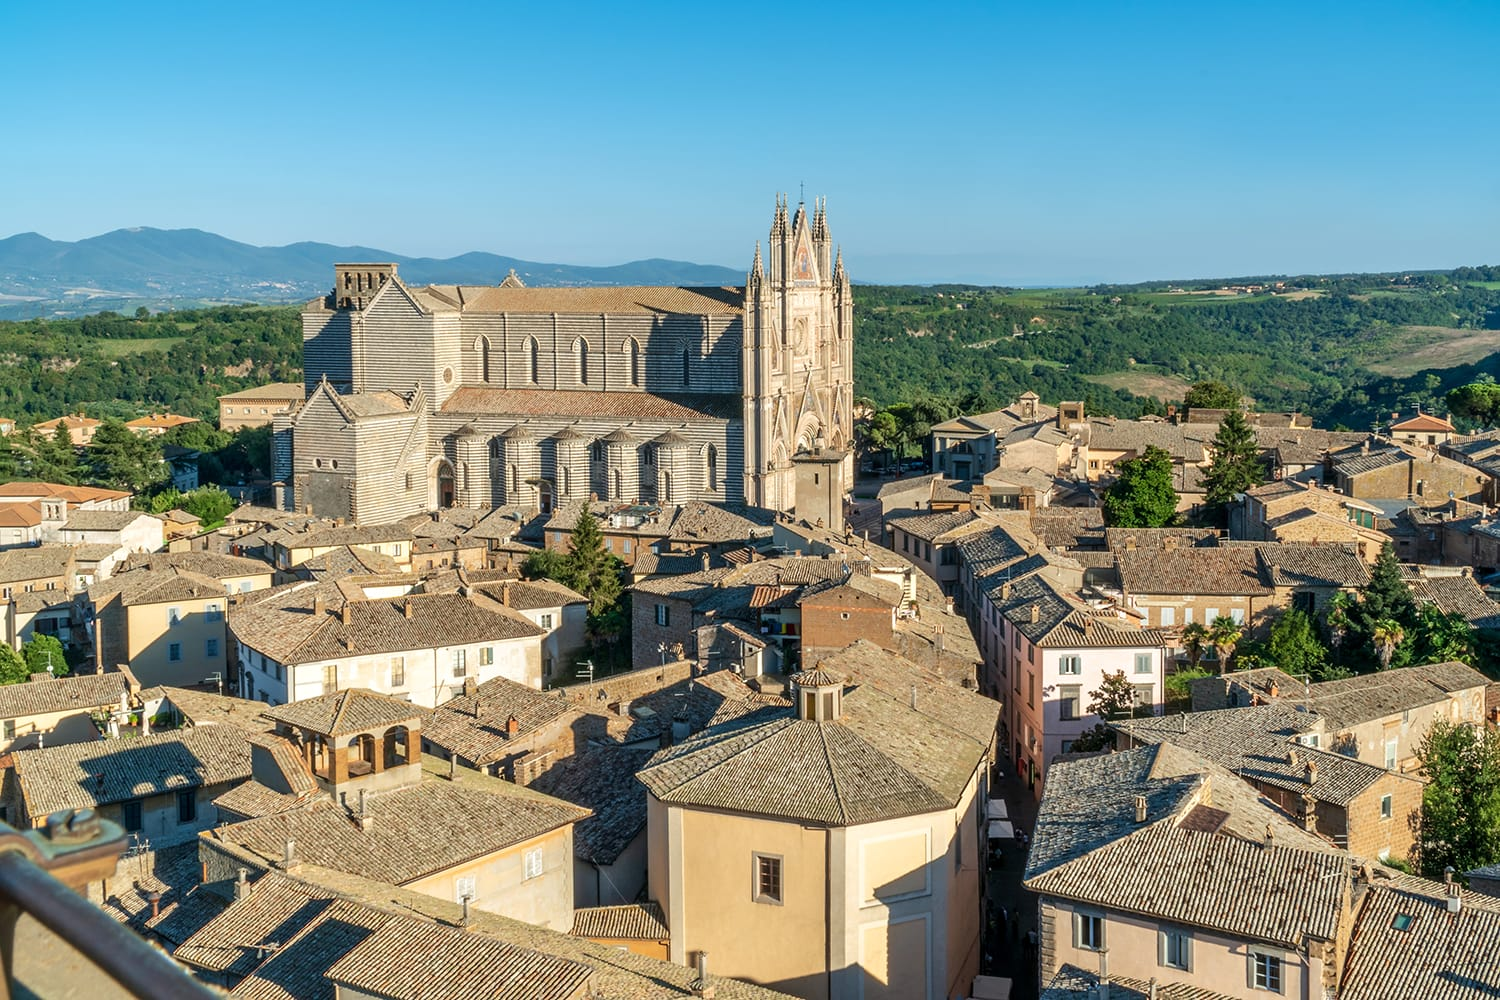 View on historic Duomo di Orvieto, Orvieto Cathedral from the Torre del Moro tower Italy